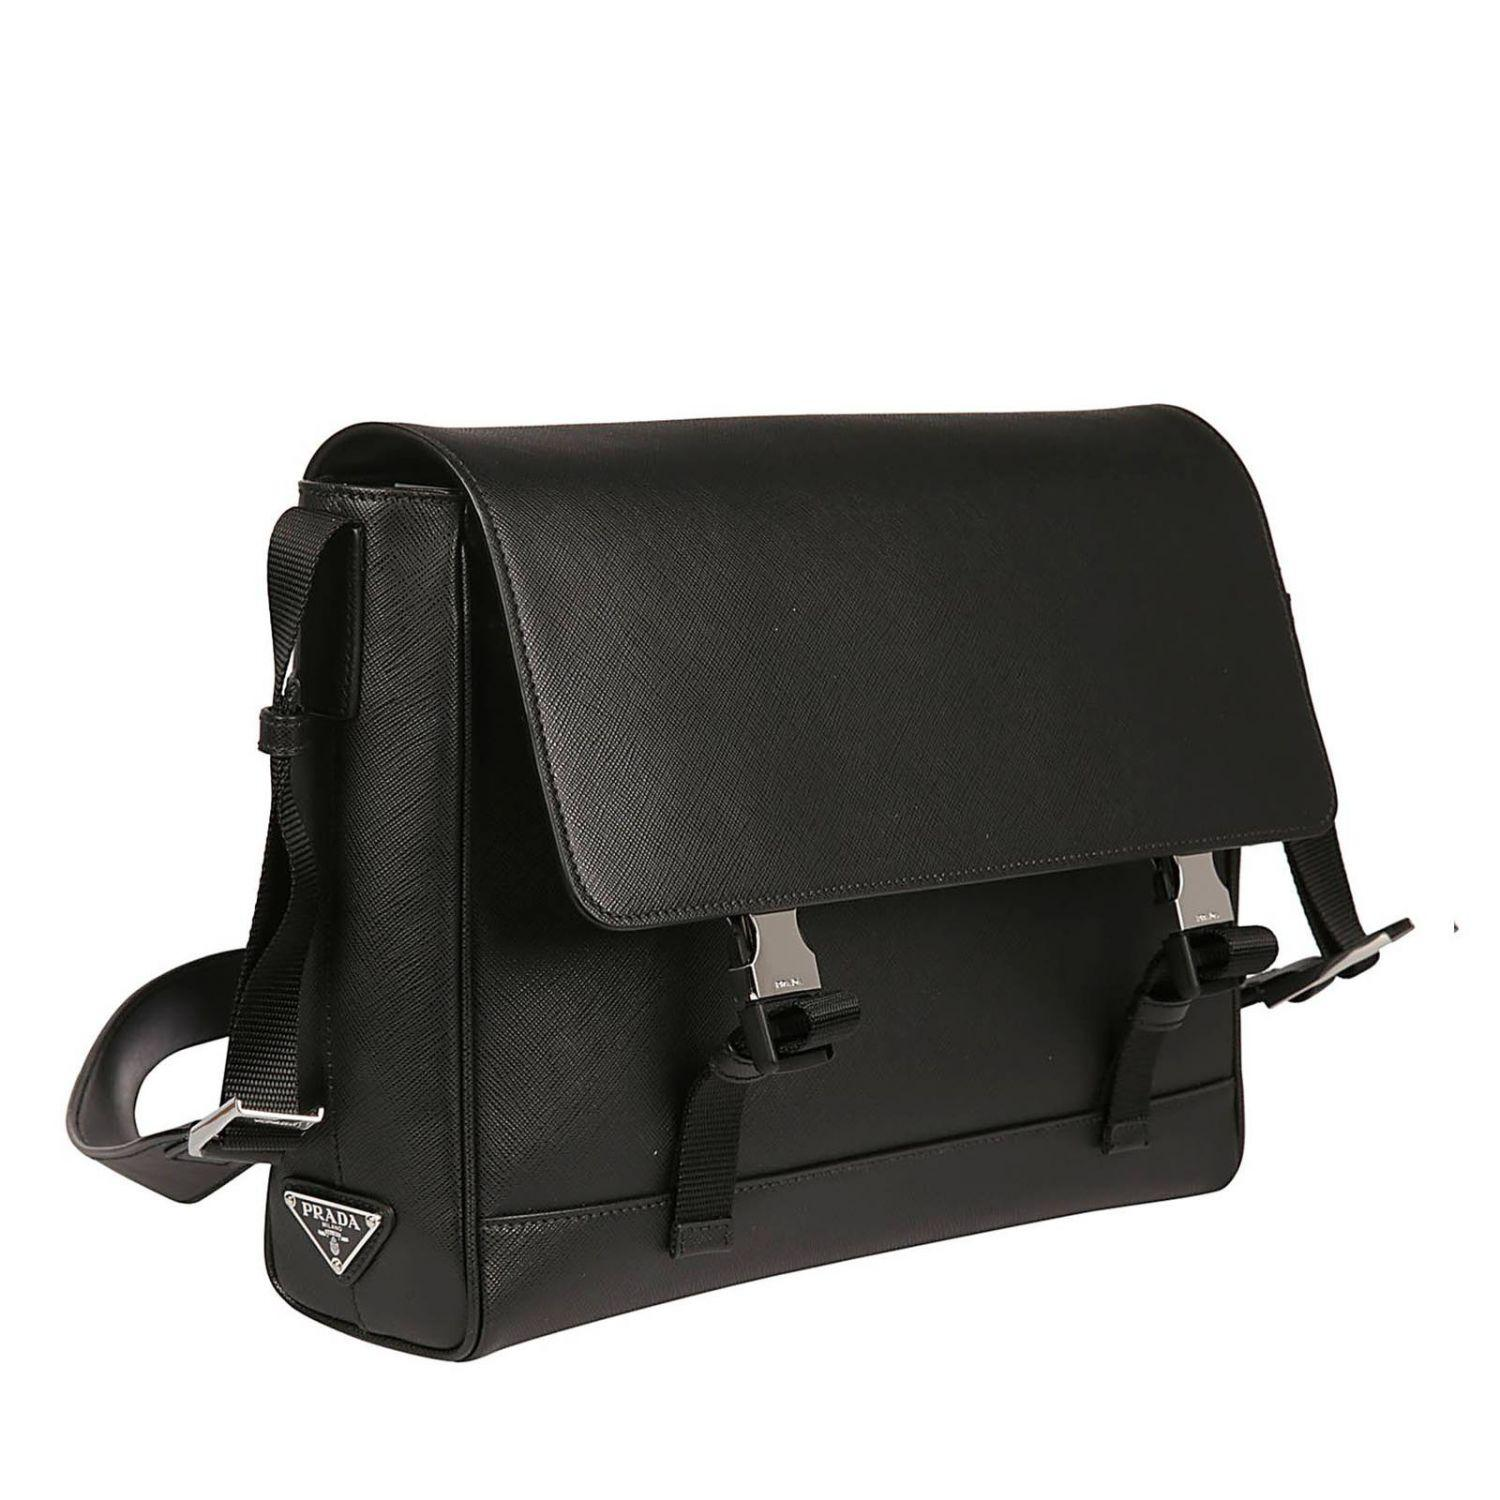 a86fcbbf1444e1 Prada - Black Shoulder Bag Men for Men - Lyst. View fullscreen